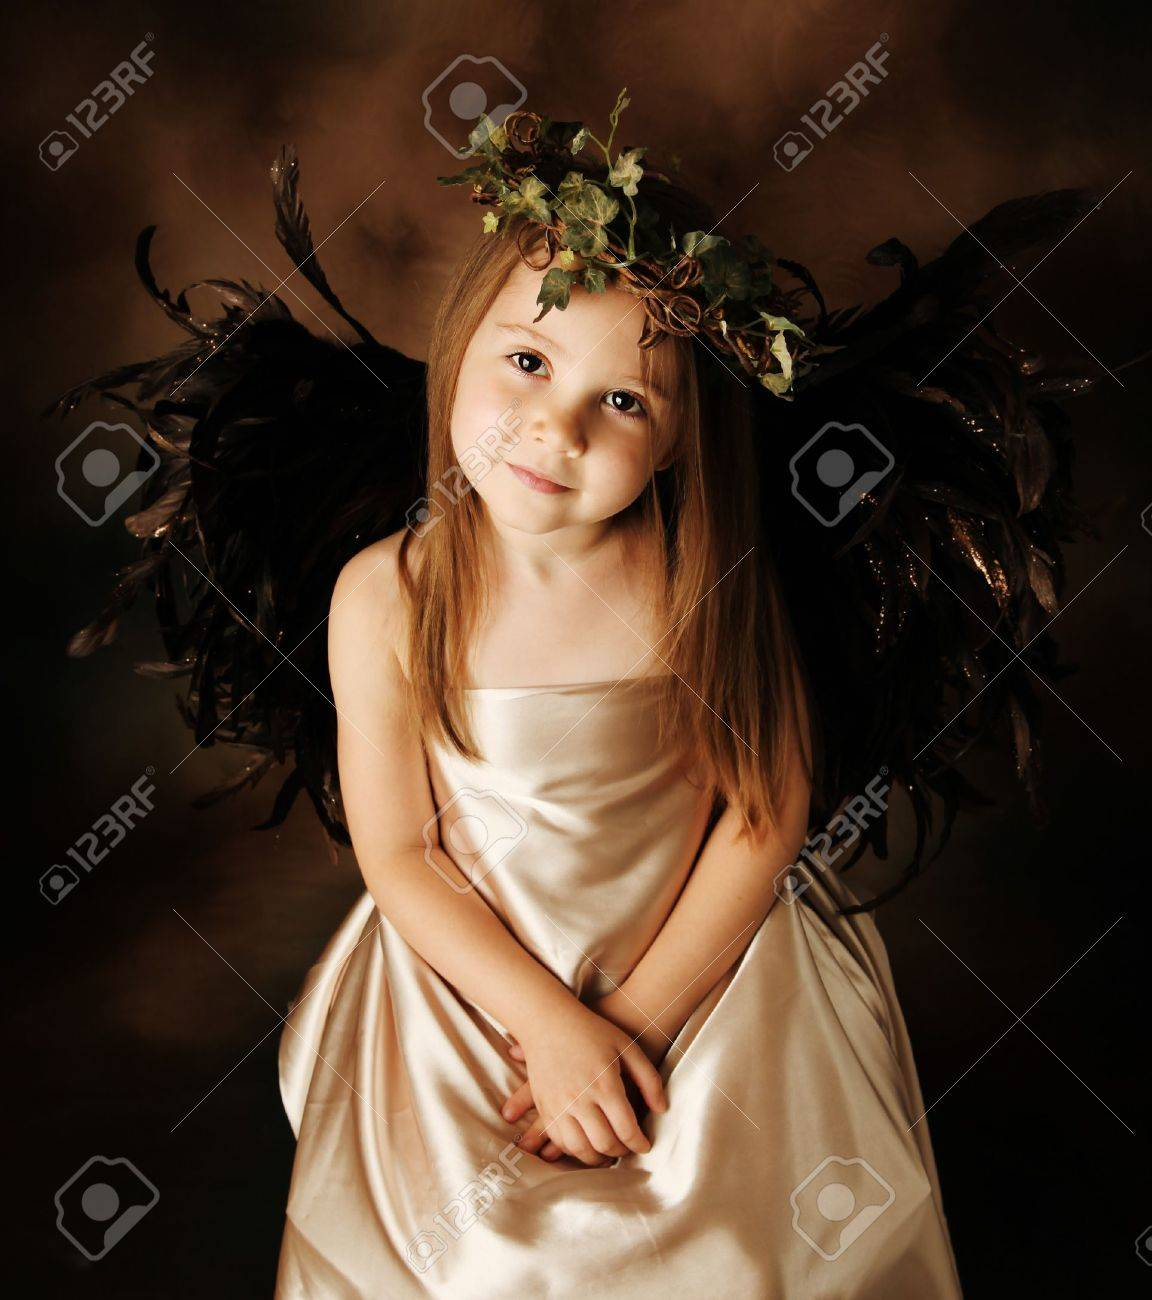 Portrait of a beautiful young girl dressed up as an angel with brown wings and a gold dress, wearing an ivy crown - 8809349